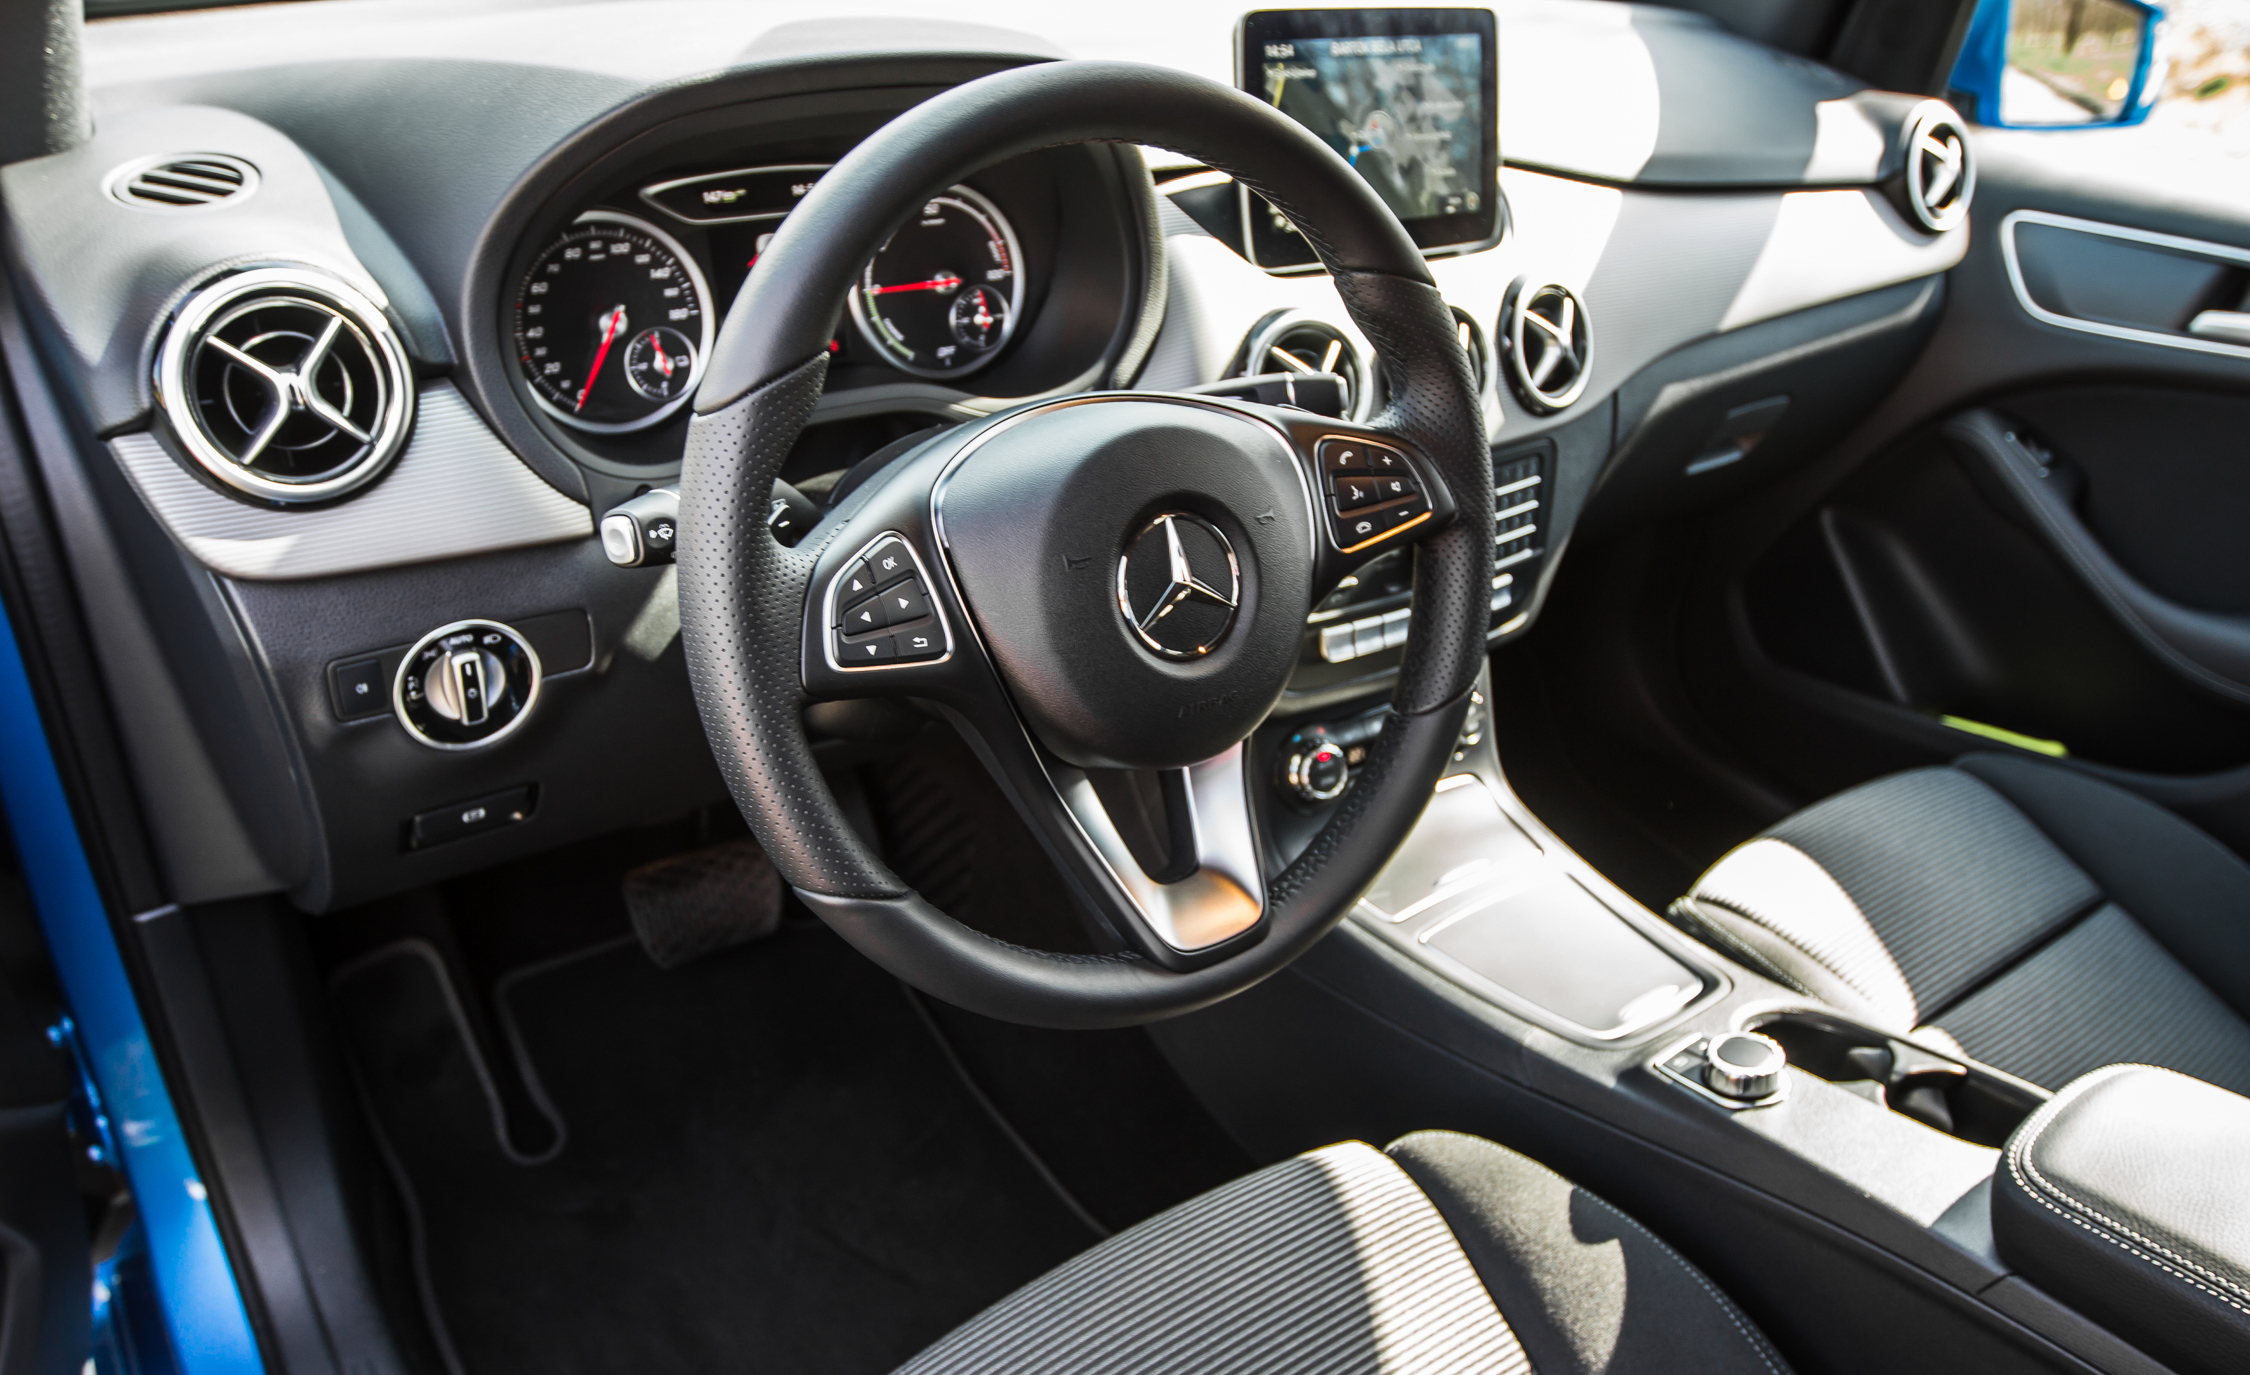 2017 Mercedes Benz B250e Interior View Driver Steering (Photo 3 of 24)